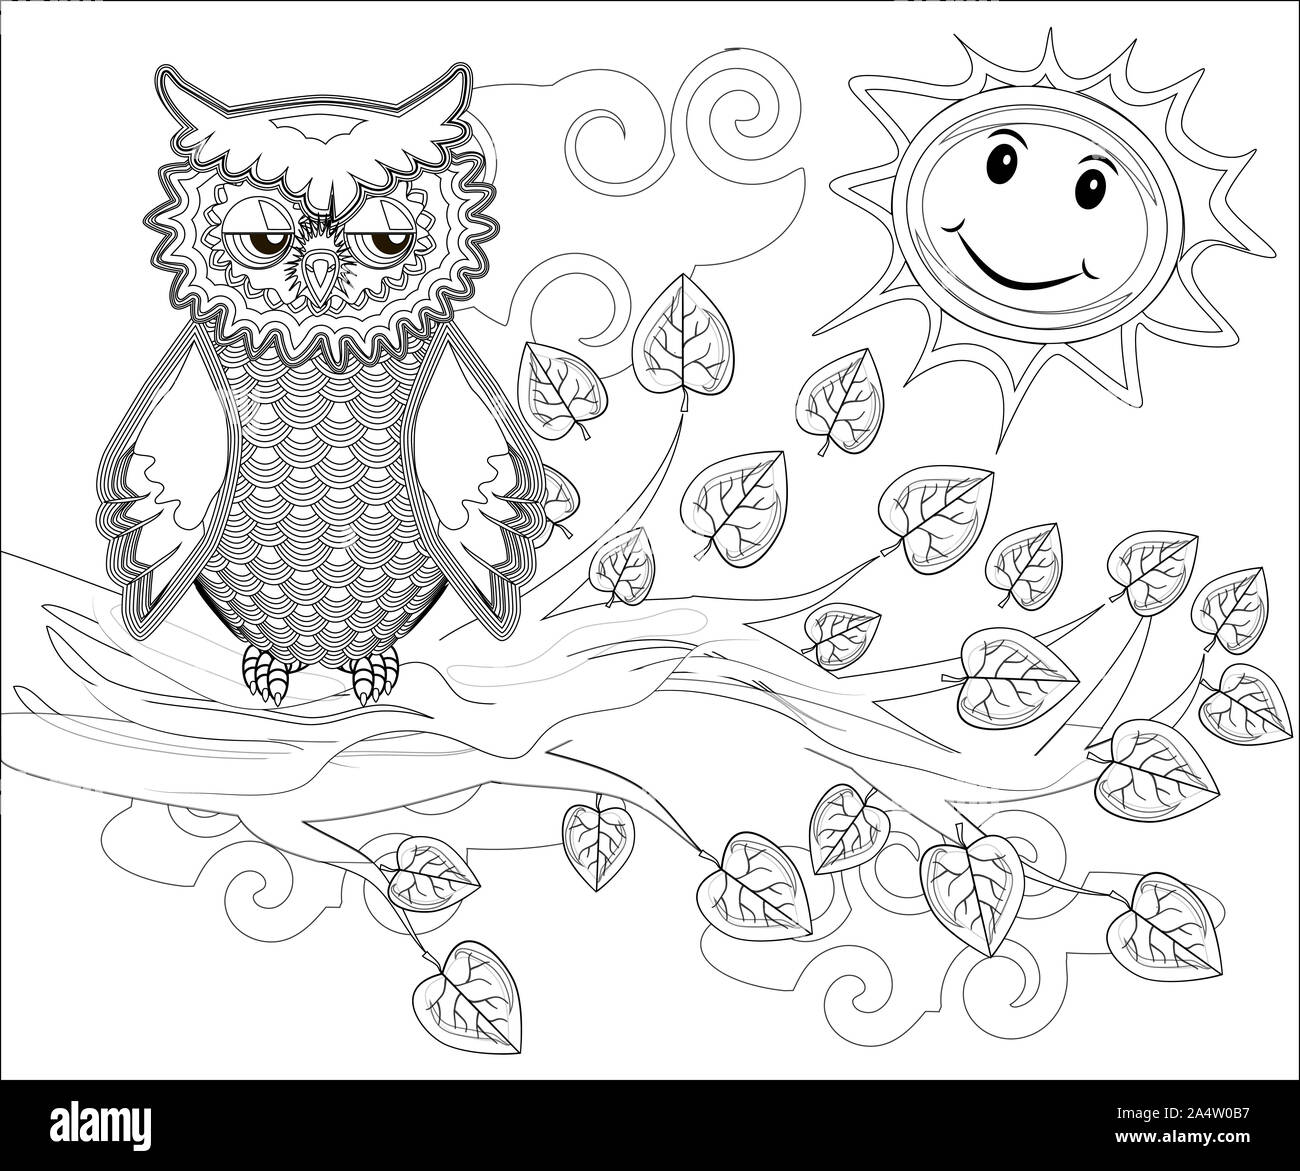 coloring pages birds cute owl sits on the tree 2A4W0B7